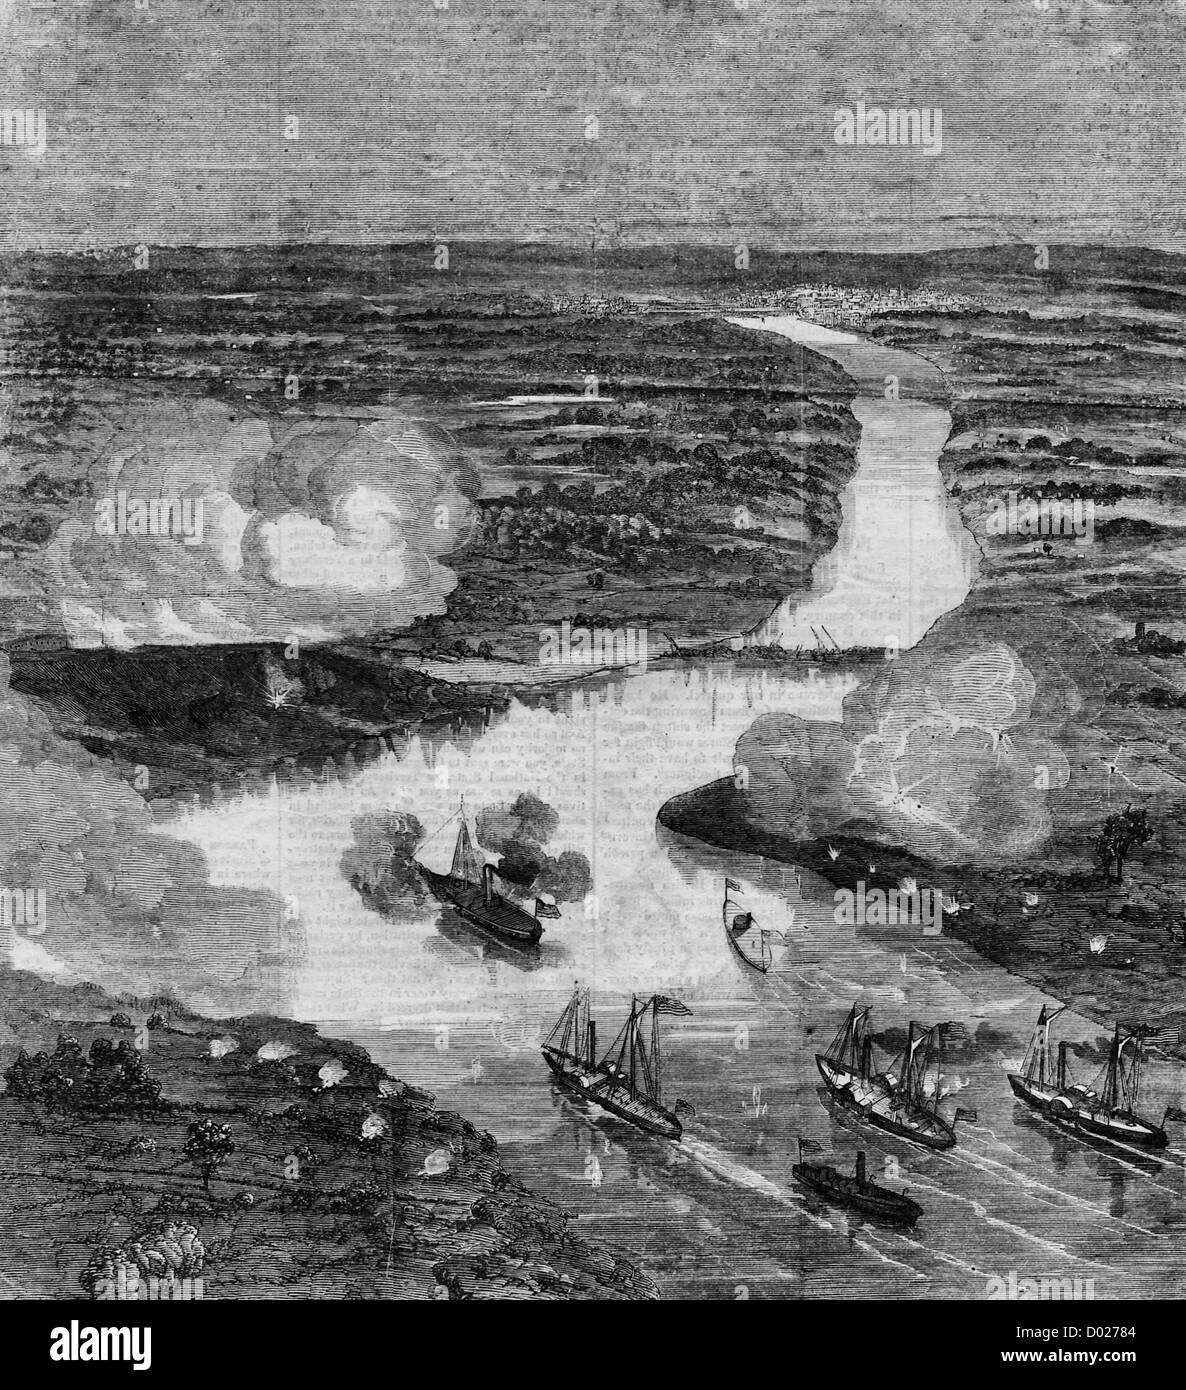 The Battle of Fort Darling, near Richmond, Virginia, May 1862 - Stock Image